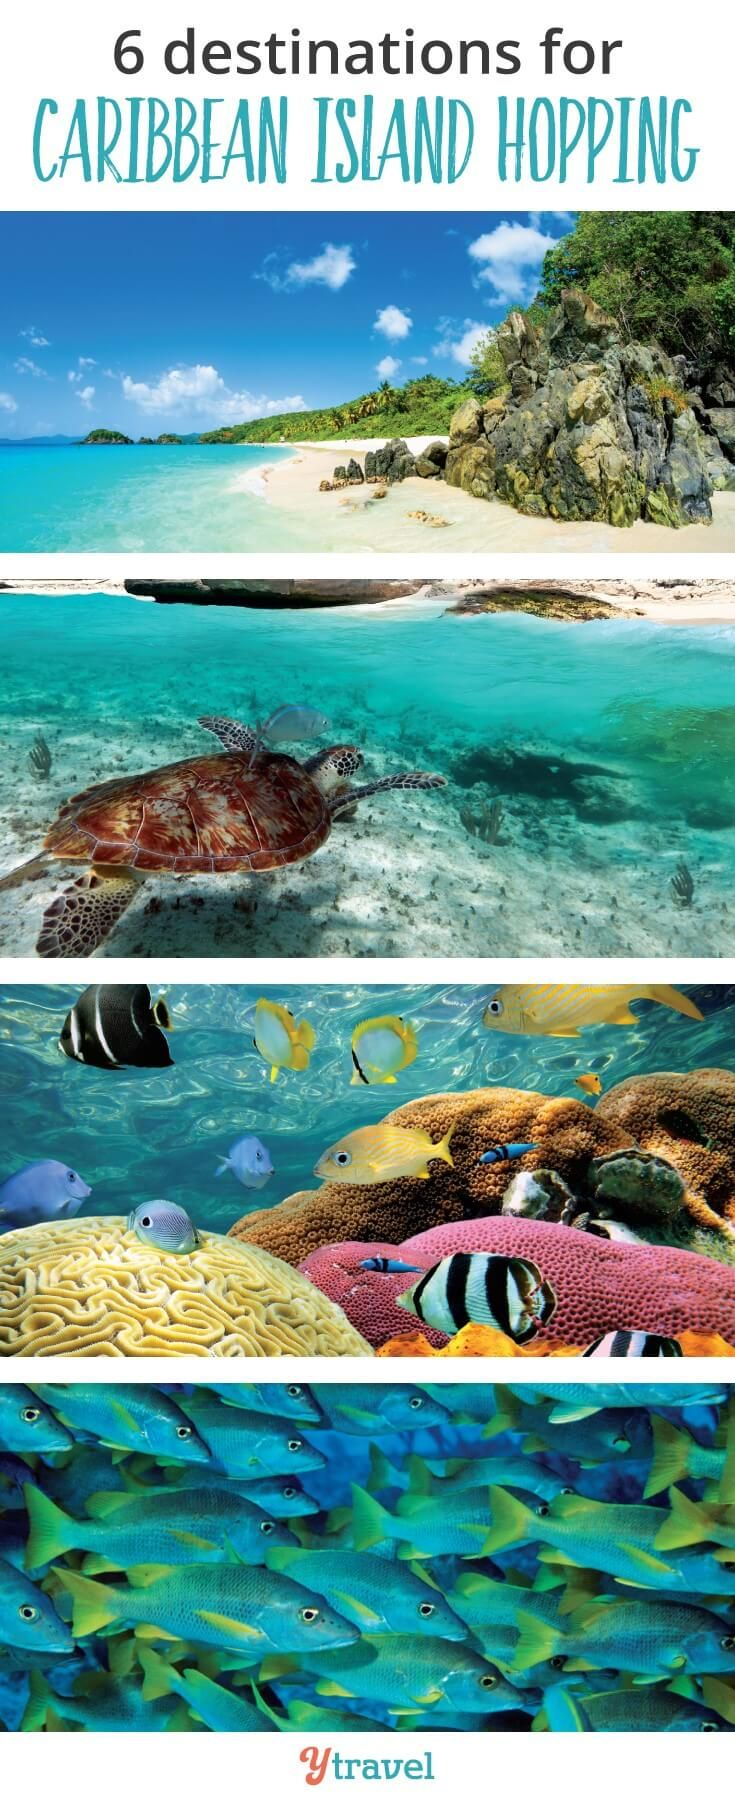 There are so many Caribbean Islands to explore. Here are the best destinations for Caribbean Island Hopping. Go find those turtles and have some fun. #caribbean #Caribbeanislands #islandhopping